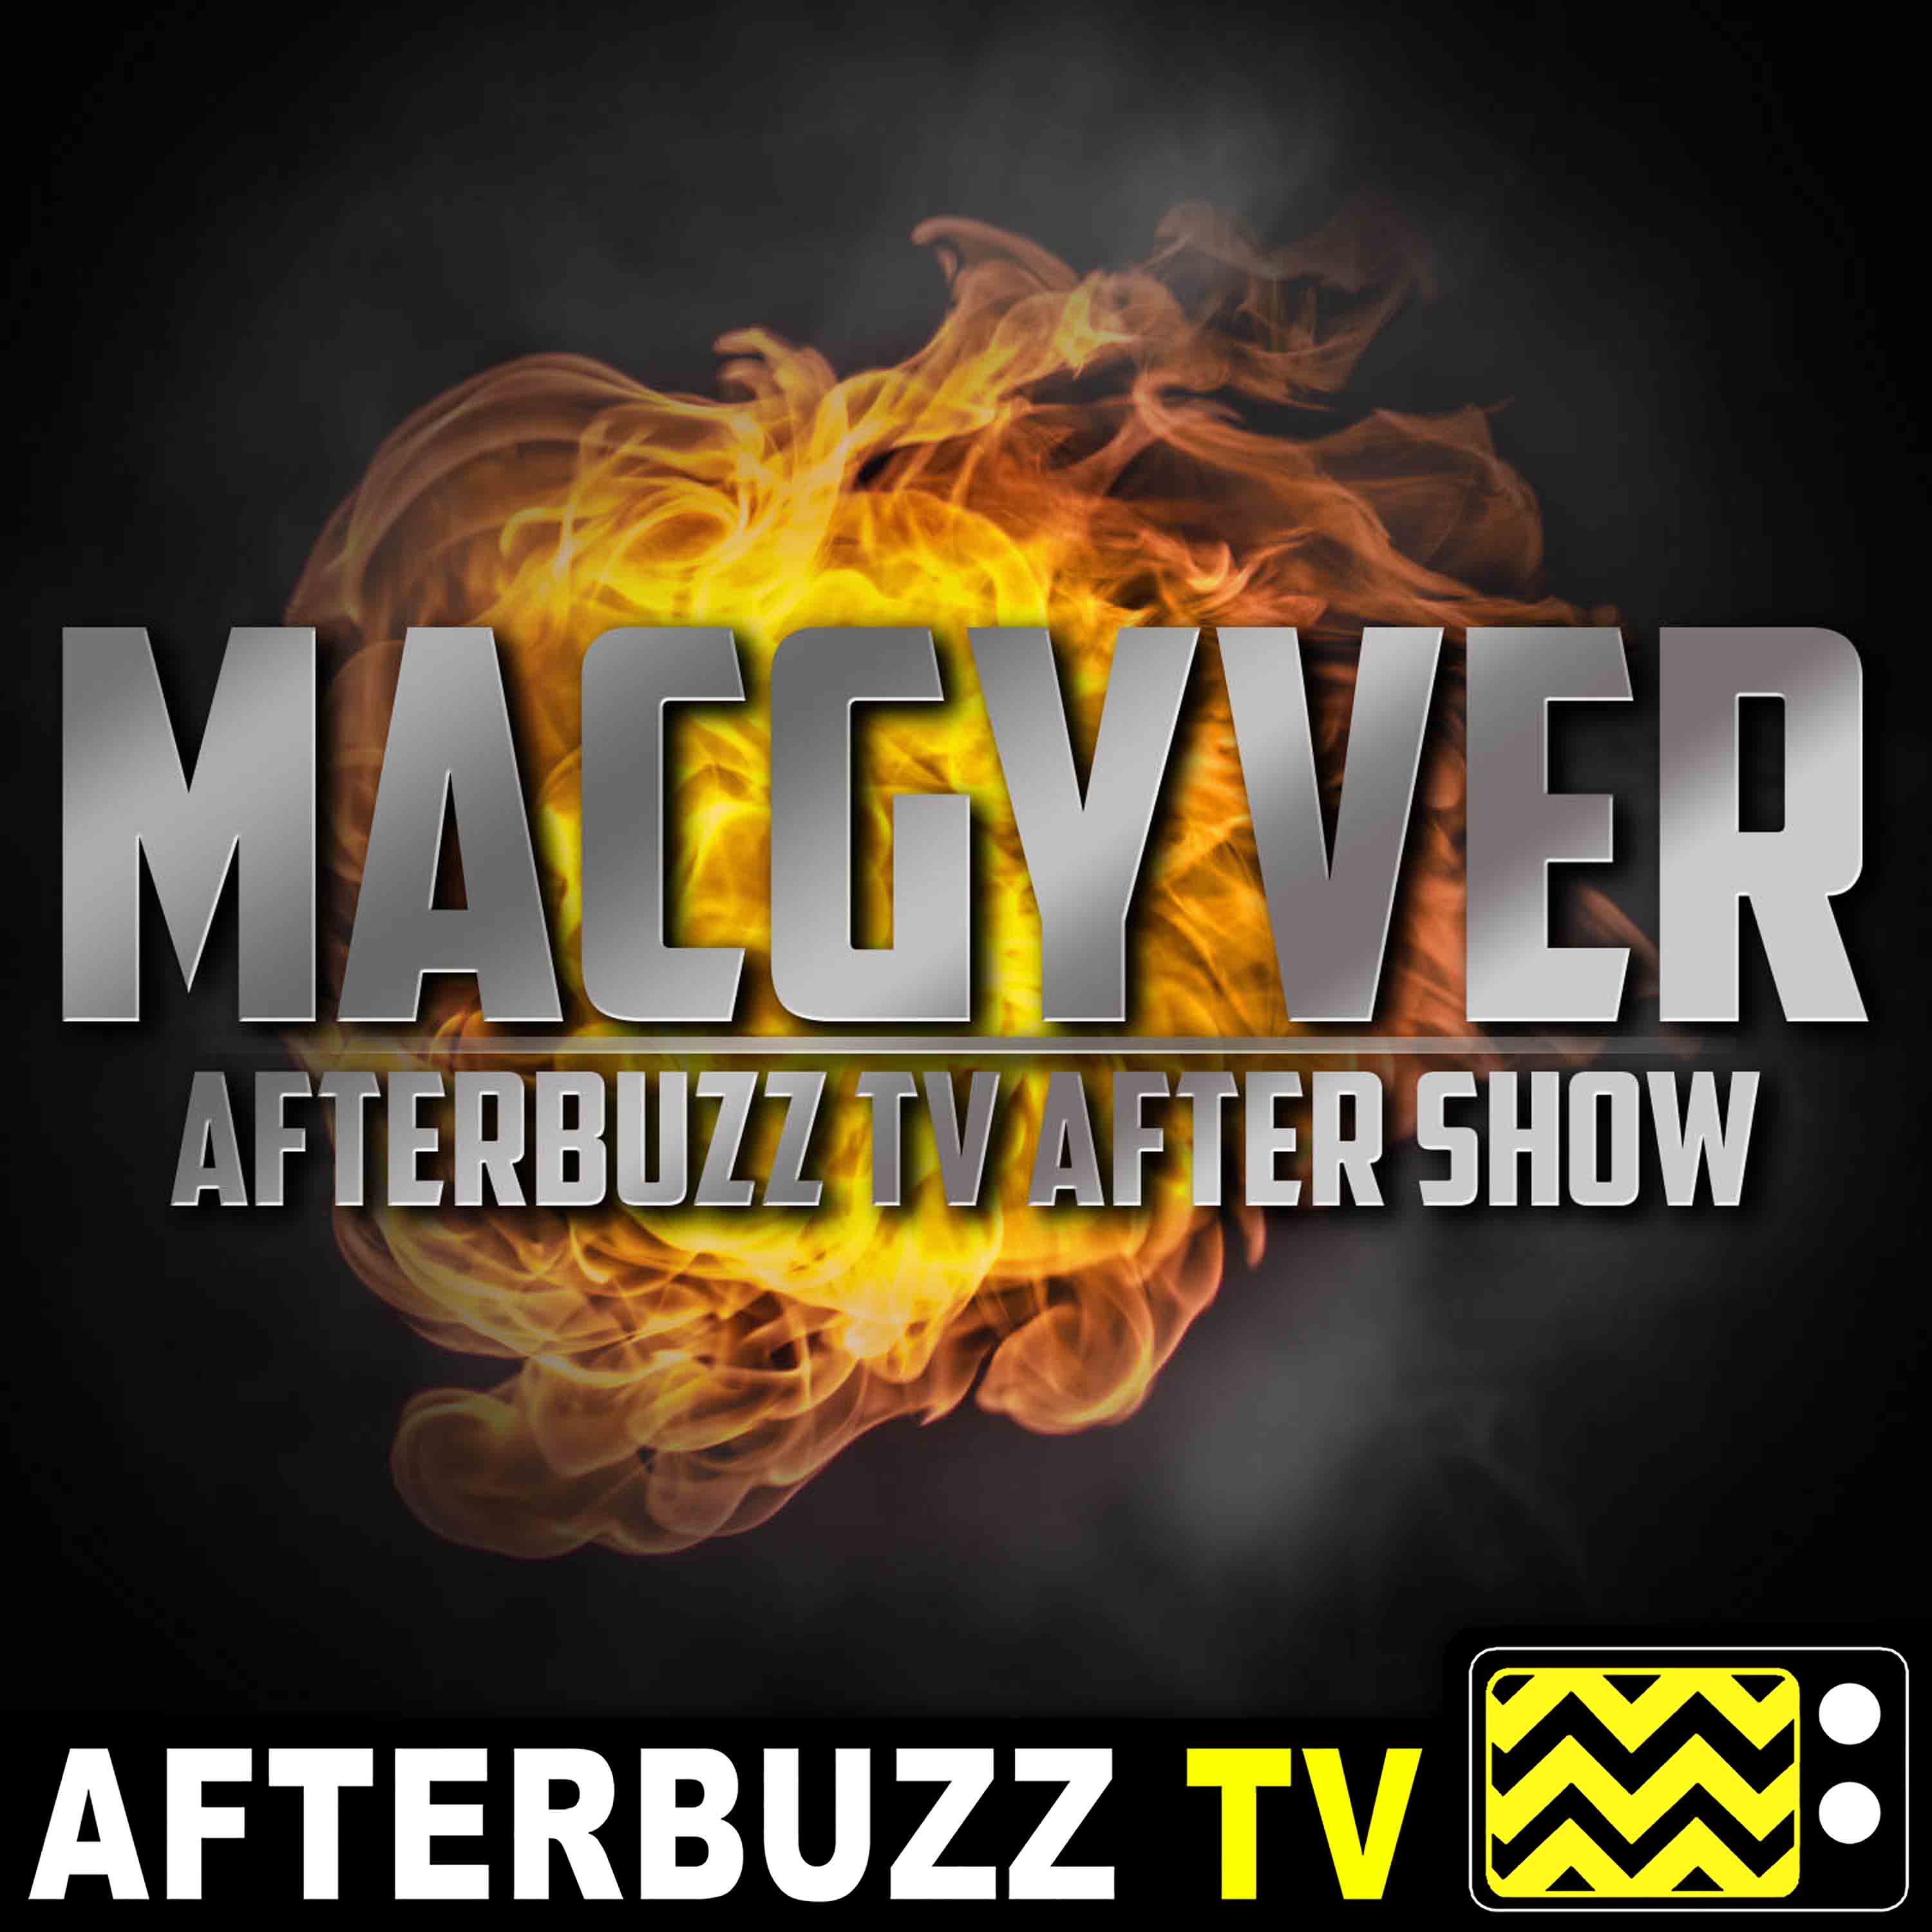 MacGyver After Show